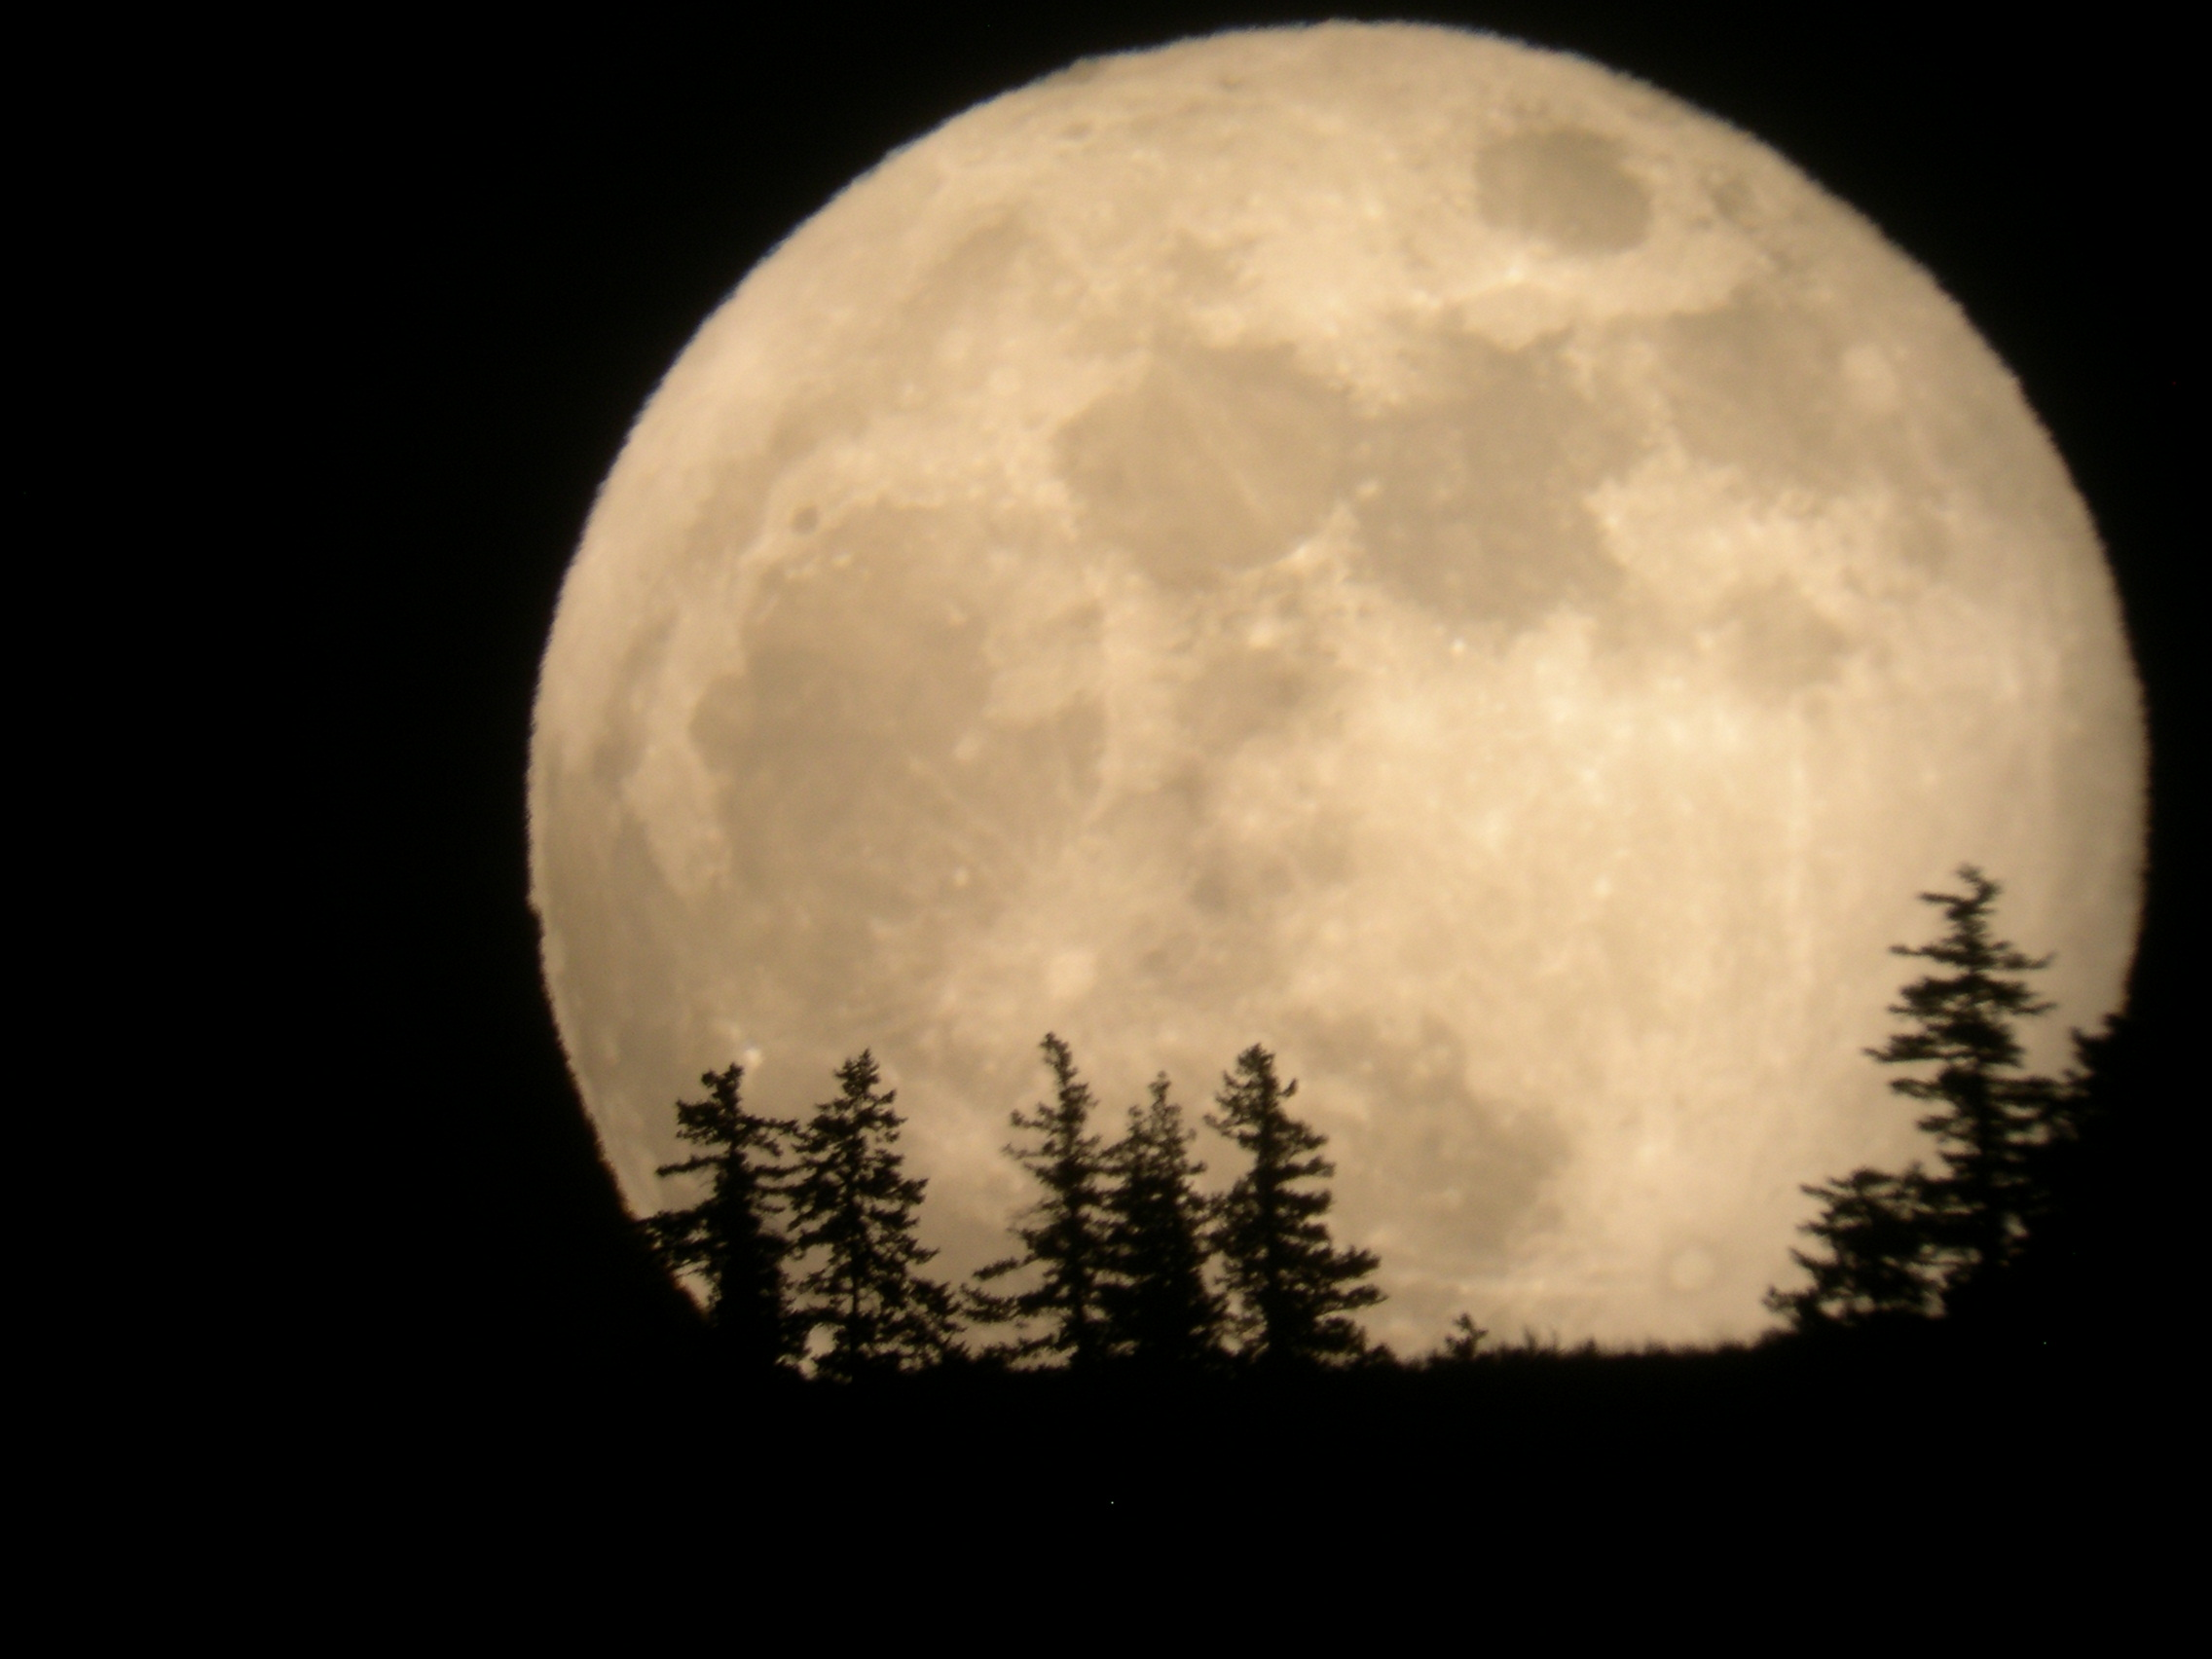 Supermoon 2012 Photos: Big Full Moon Views from Around the World